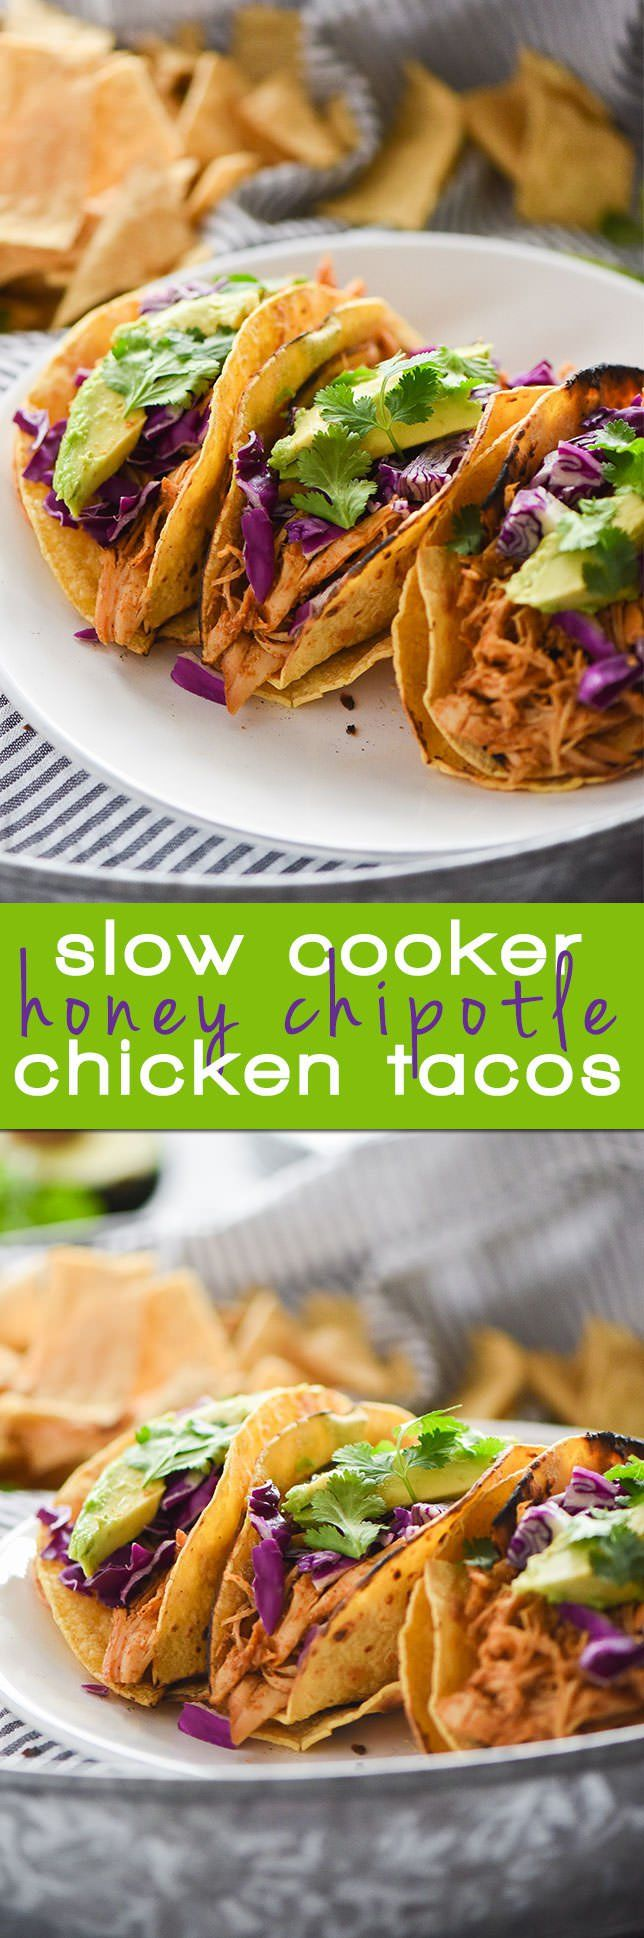 Slow Cooker Honey Chipotle Chicken Tacos are sweet & spicy, and is fall apart tender & full of chipotle and honey! Delicious in tacos or over lettuce!